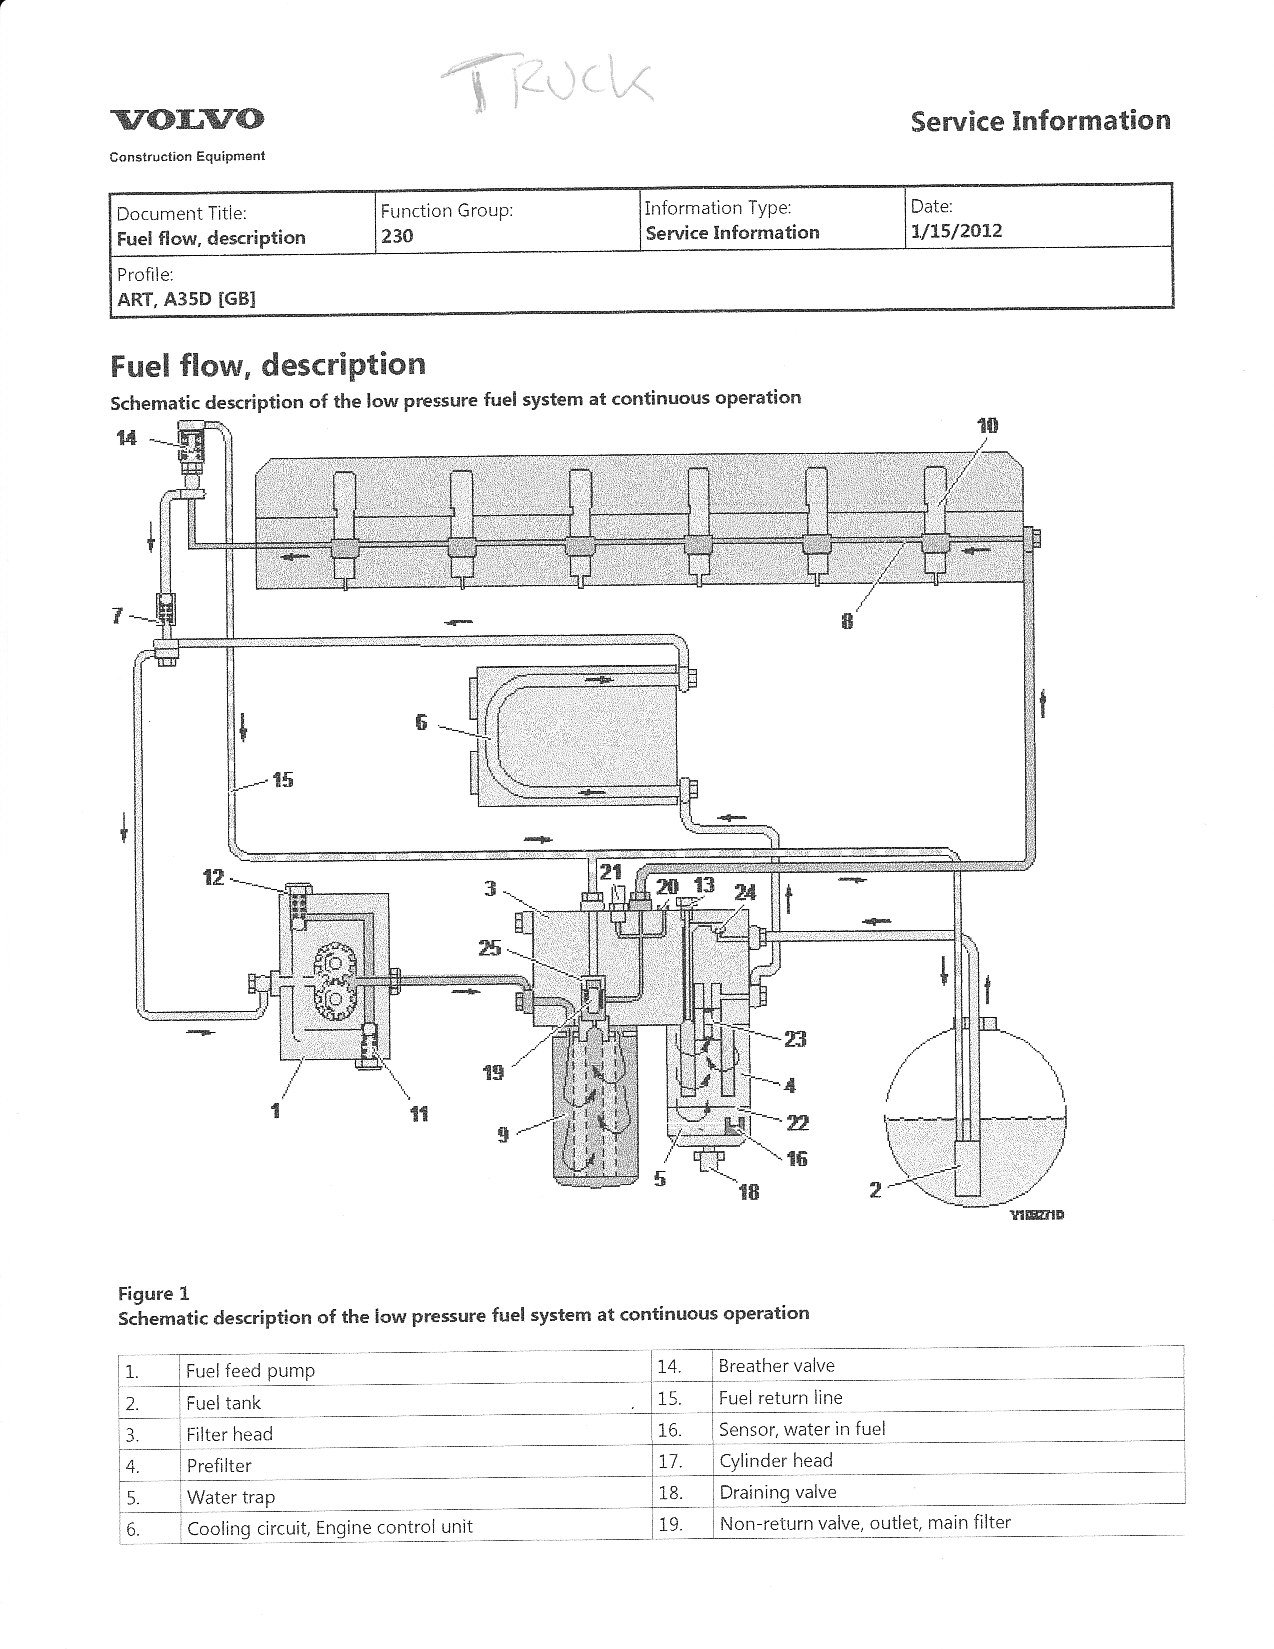 I Have A 2004 Volvo Vnl In The Shop With An Egr D12 Engine This Is. I Am Also Sending You The Description For Fuel Flow On A D12 Think We Need To Get This Timing Corrected First As Well Is More Just Future. Volvo. Volvo D12 Engine Fuel Diagram At Scoala.co